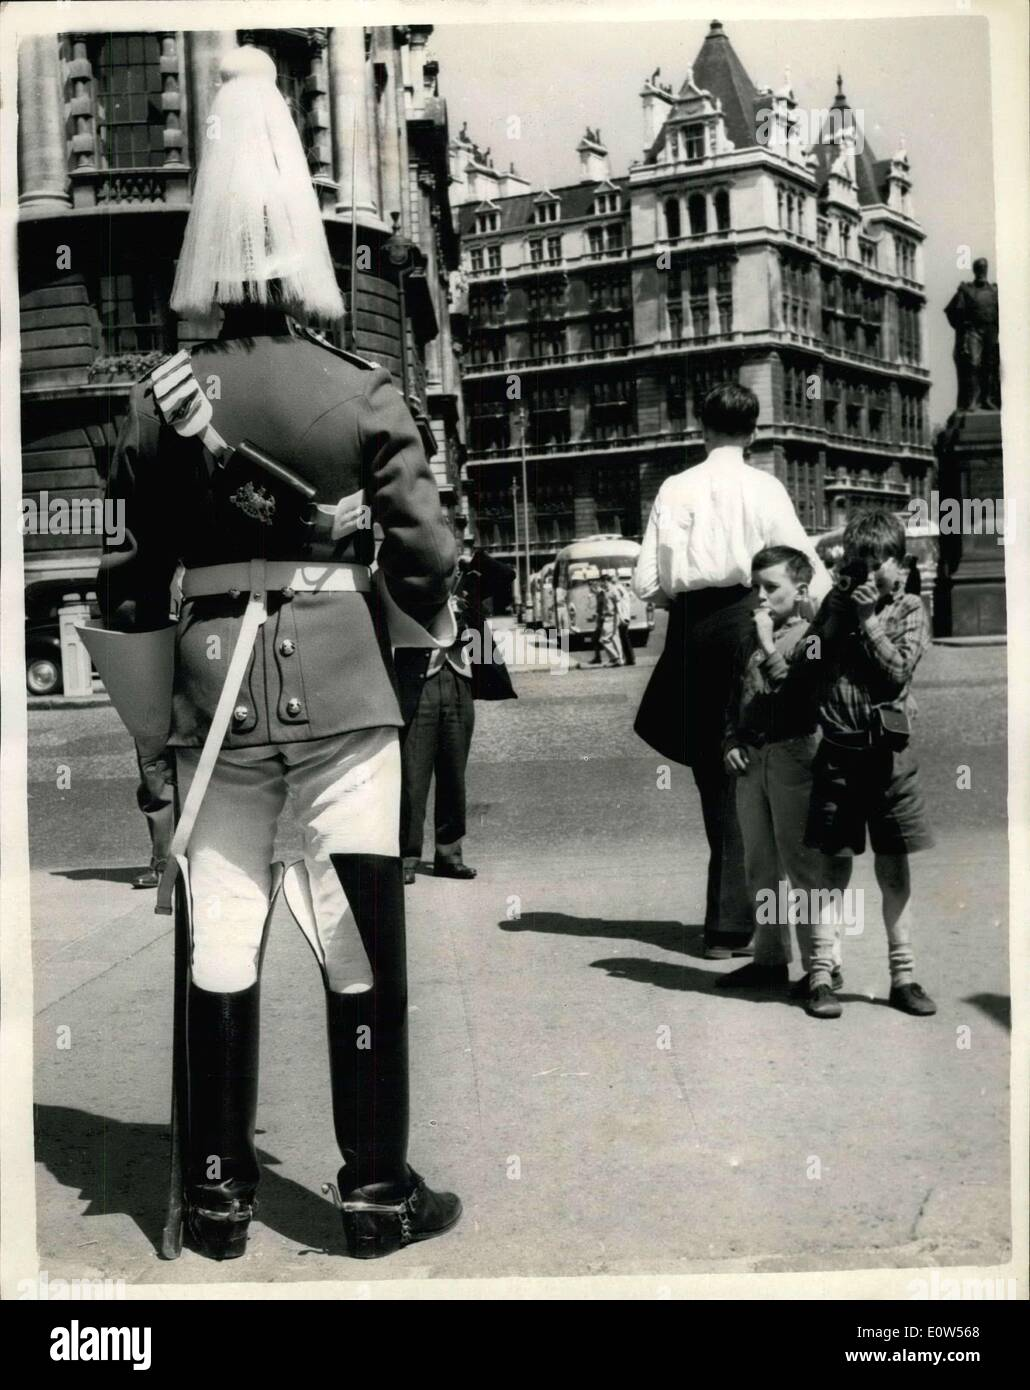 Jun. 24, 1961 - Hot Weather Scenes - In London The Guard Is Very Warm: With the temperature well up in the seventies - it was shirt-sleeve order in London this afternoon. Photo shows Ten years old John Duhigg of Bermondsey, London - uses his camera to get a snap of the Horse Guard - at Horse Guards Parade this afternoon. Looking on is nine year old Chris Clifford - also of Bermondsey. - Stock Image